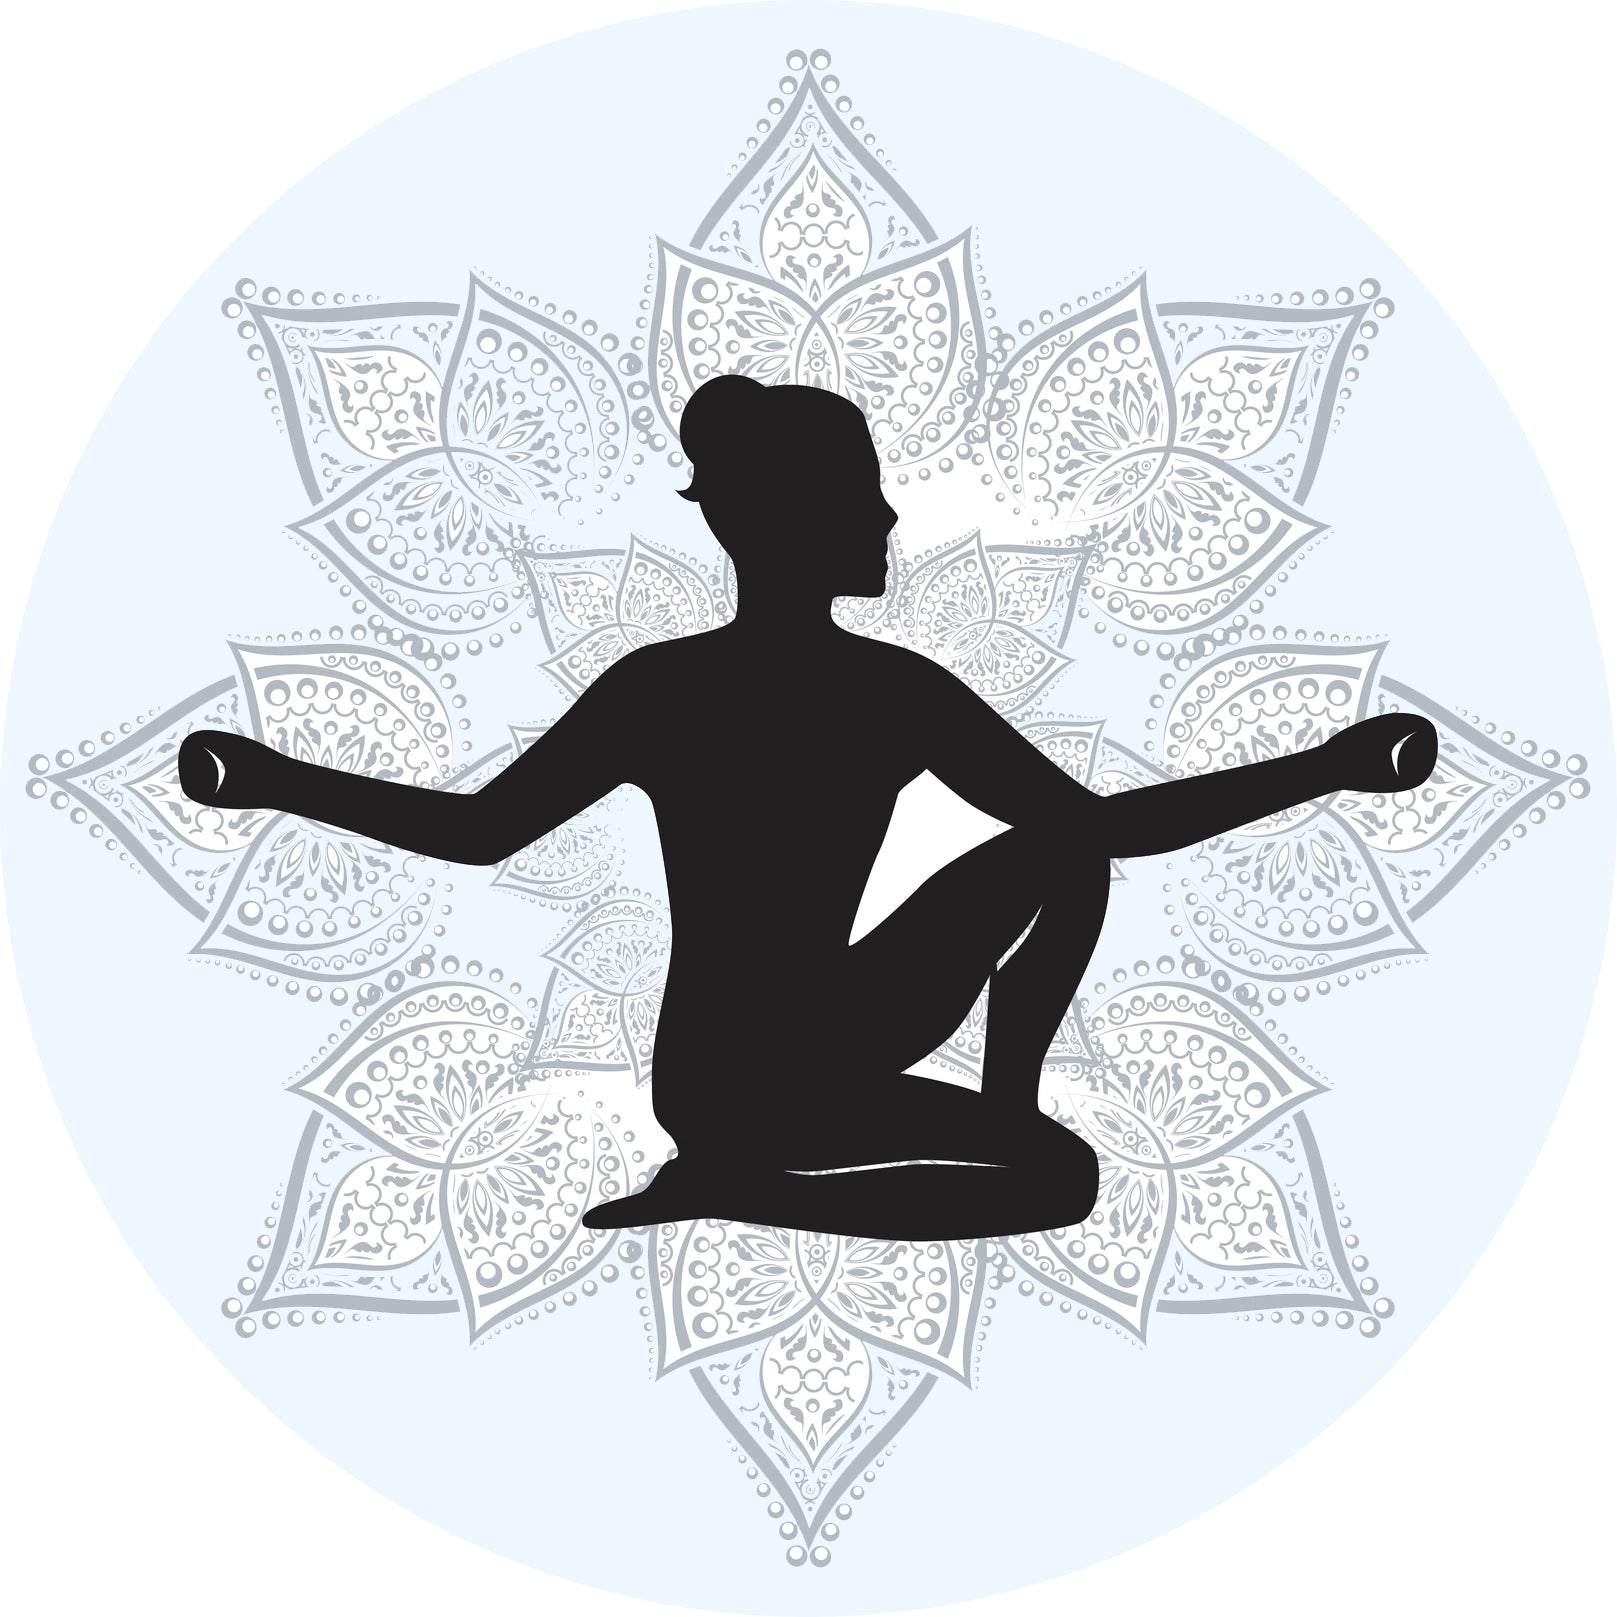 Cool Yoga Yogi Silhouette with Mandala Flower Background - Blue #2 Vinyl Decal Sticker